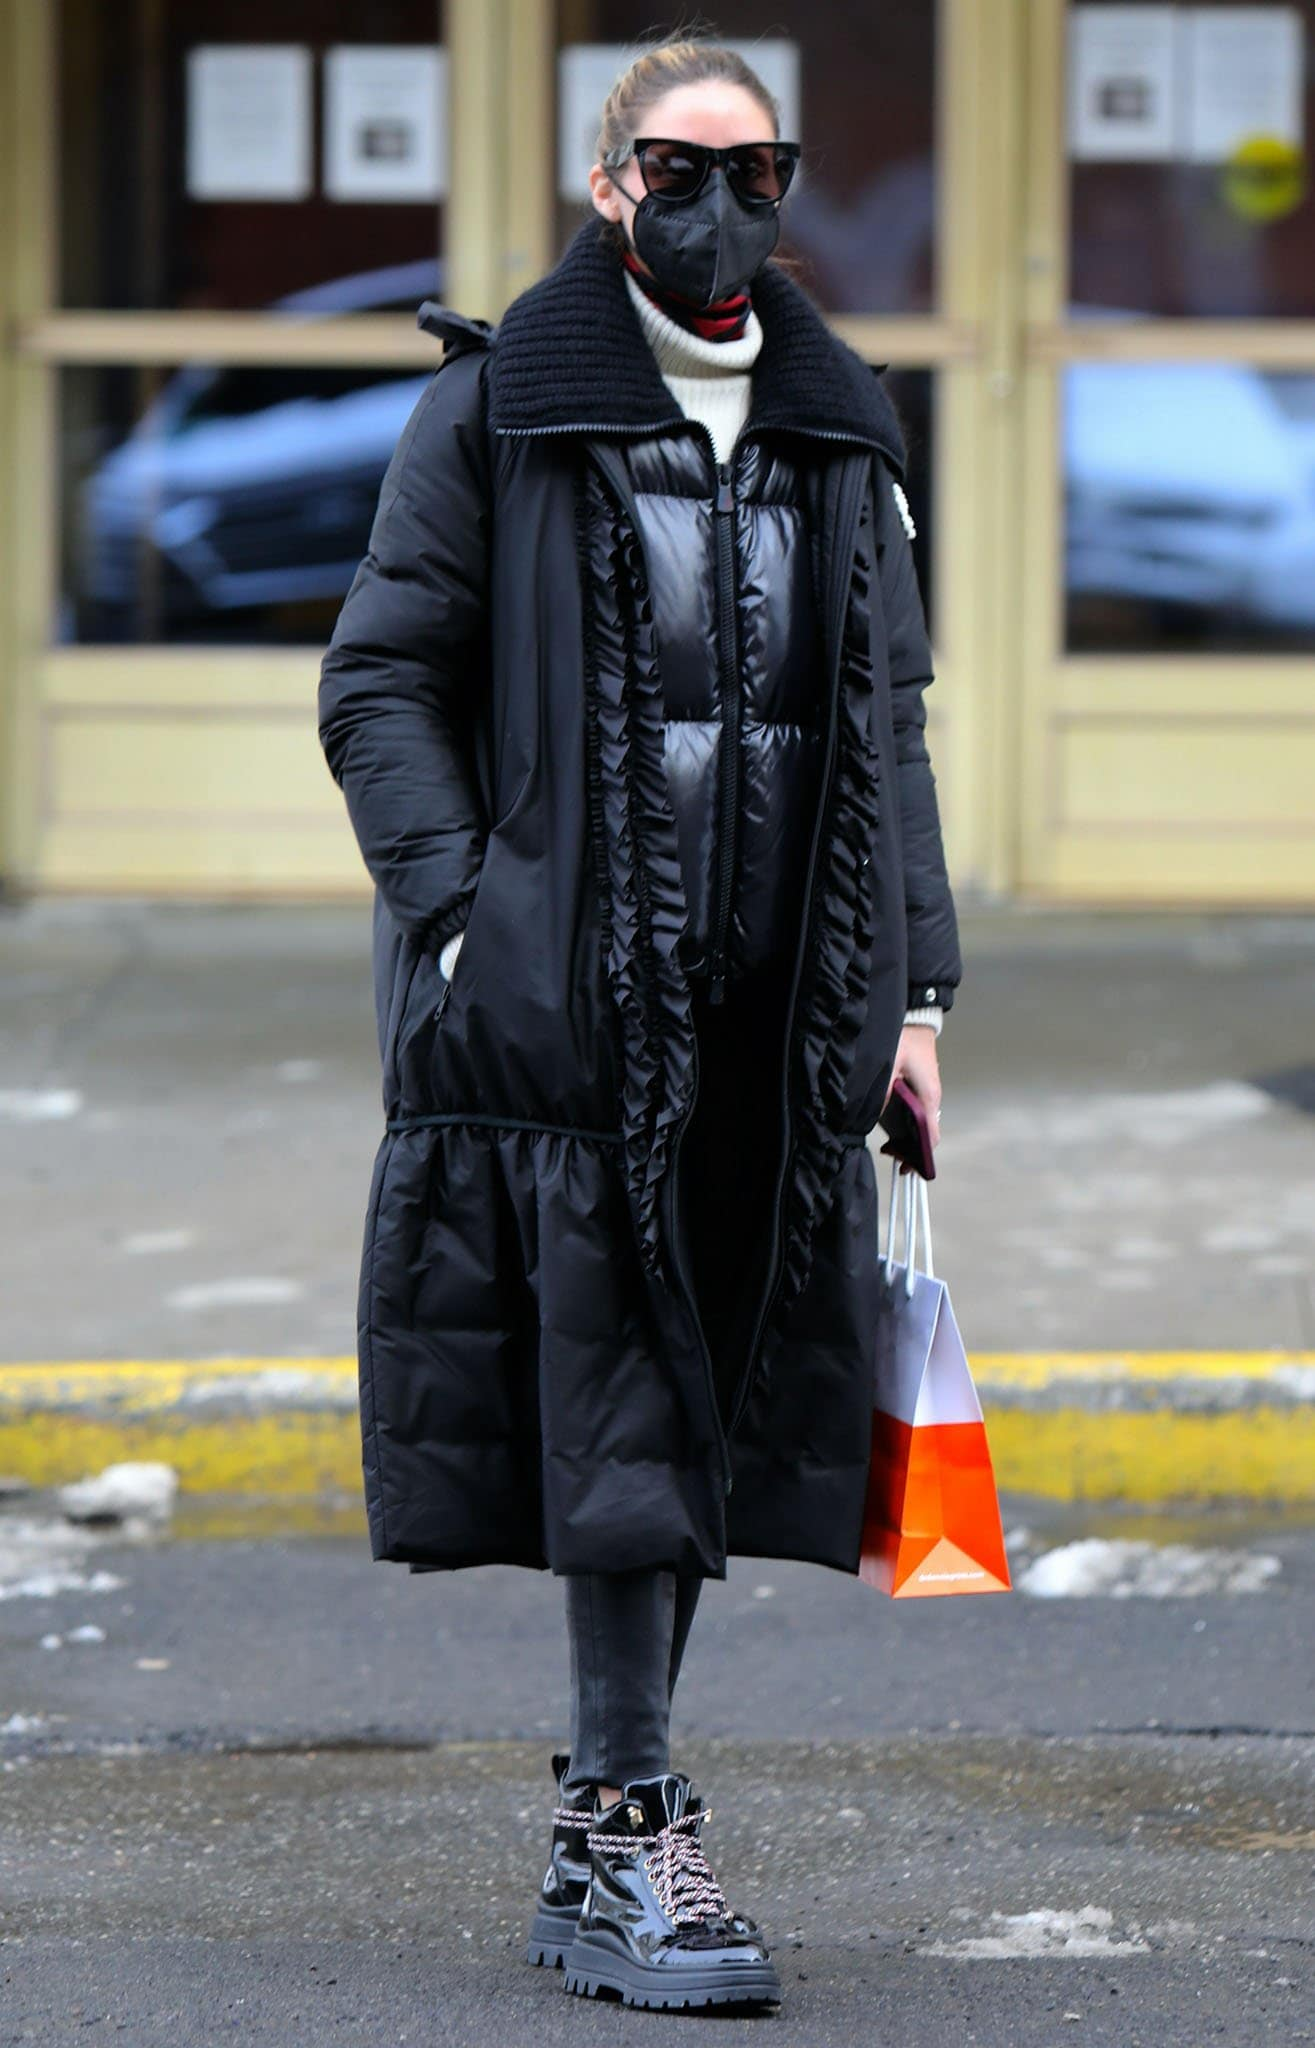 Olivia Palermo bundles up in Moncler Genius x Simone Rocha coat, vinyl jacket, and cream knit sweater